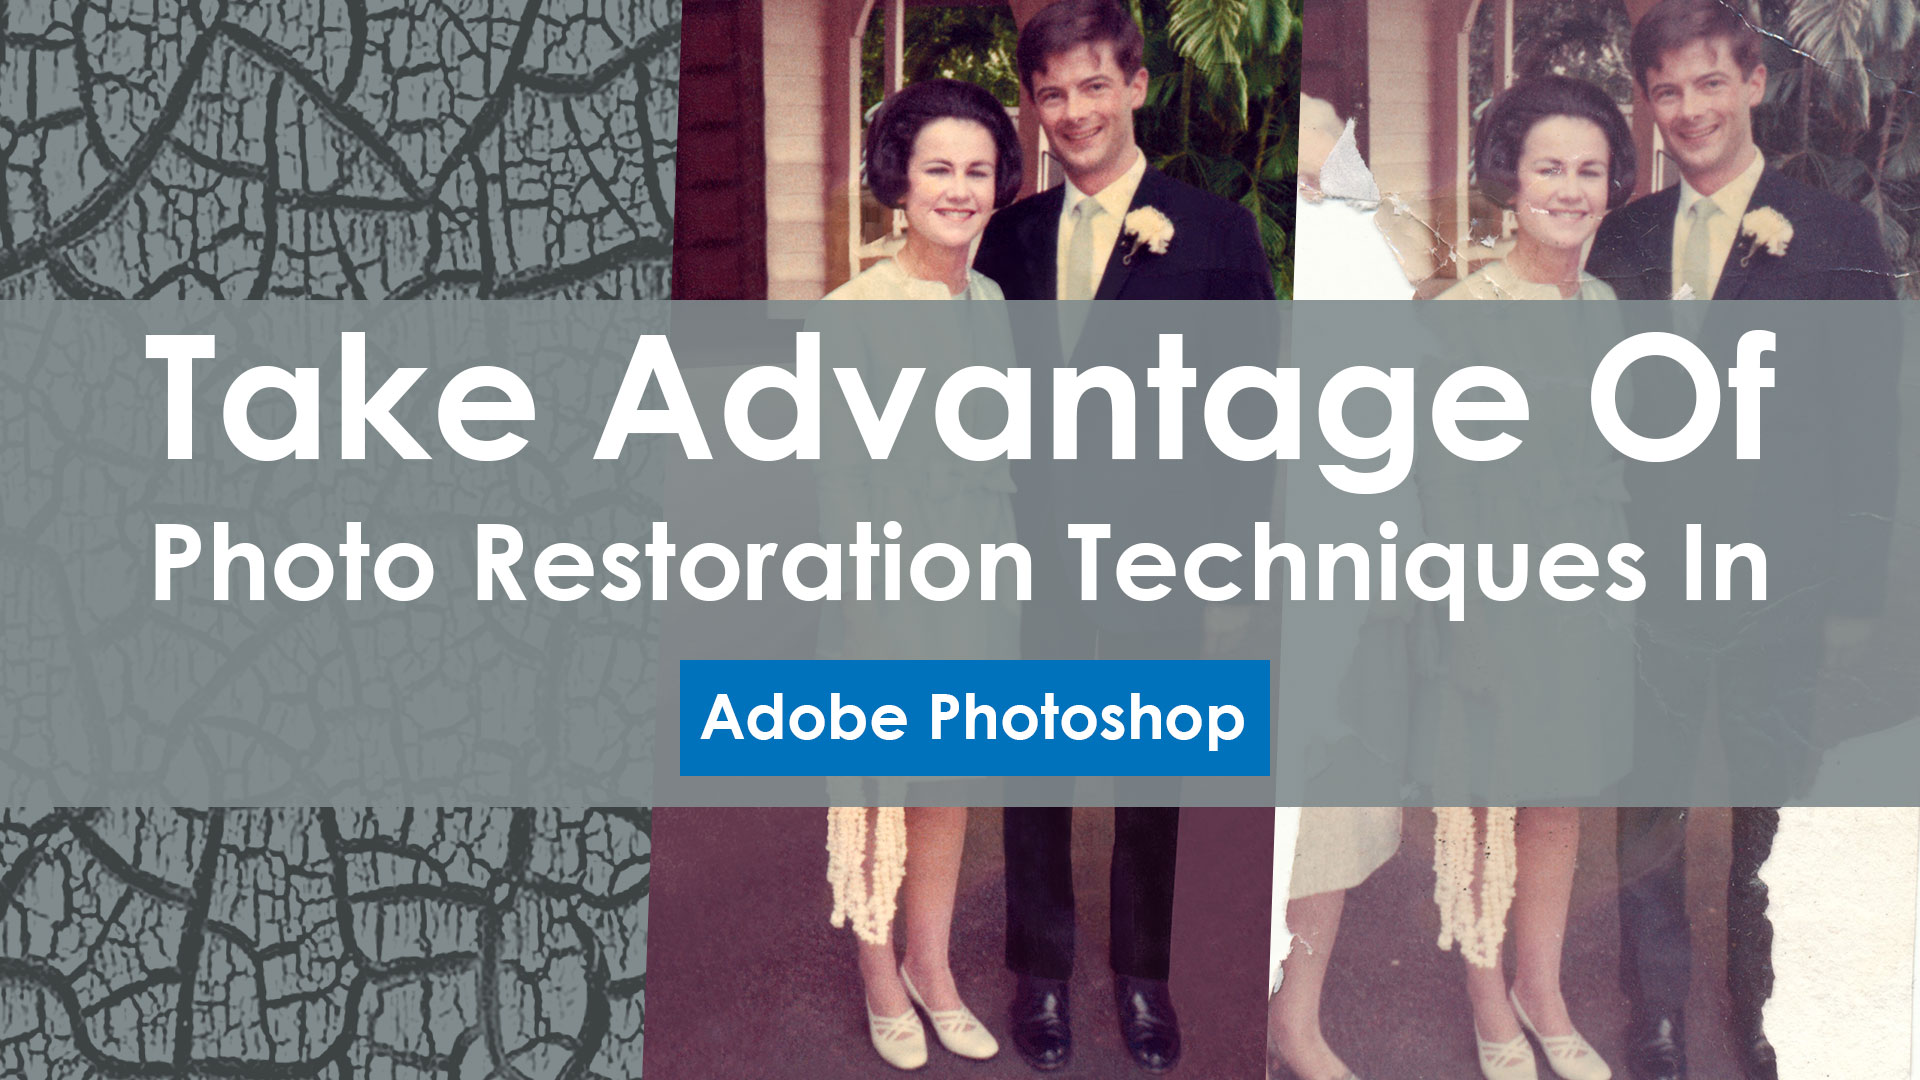 Take-Advantage-Of-Photo-Restoration-Techniques-In-Photoshop